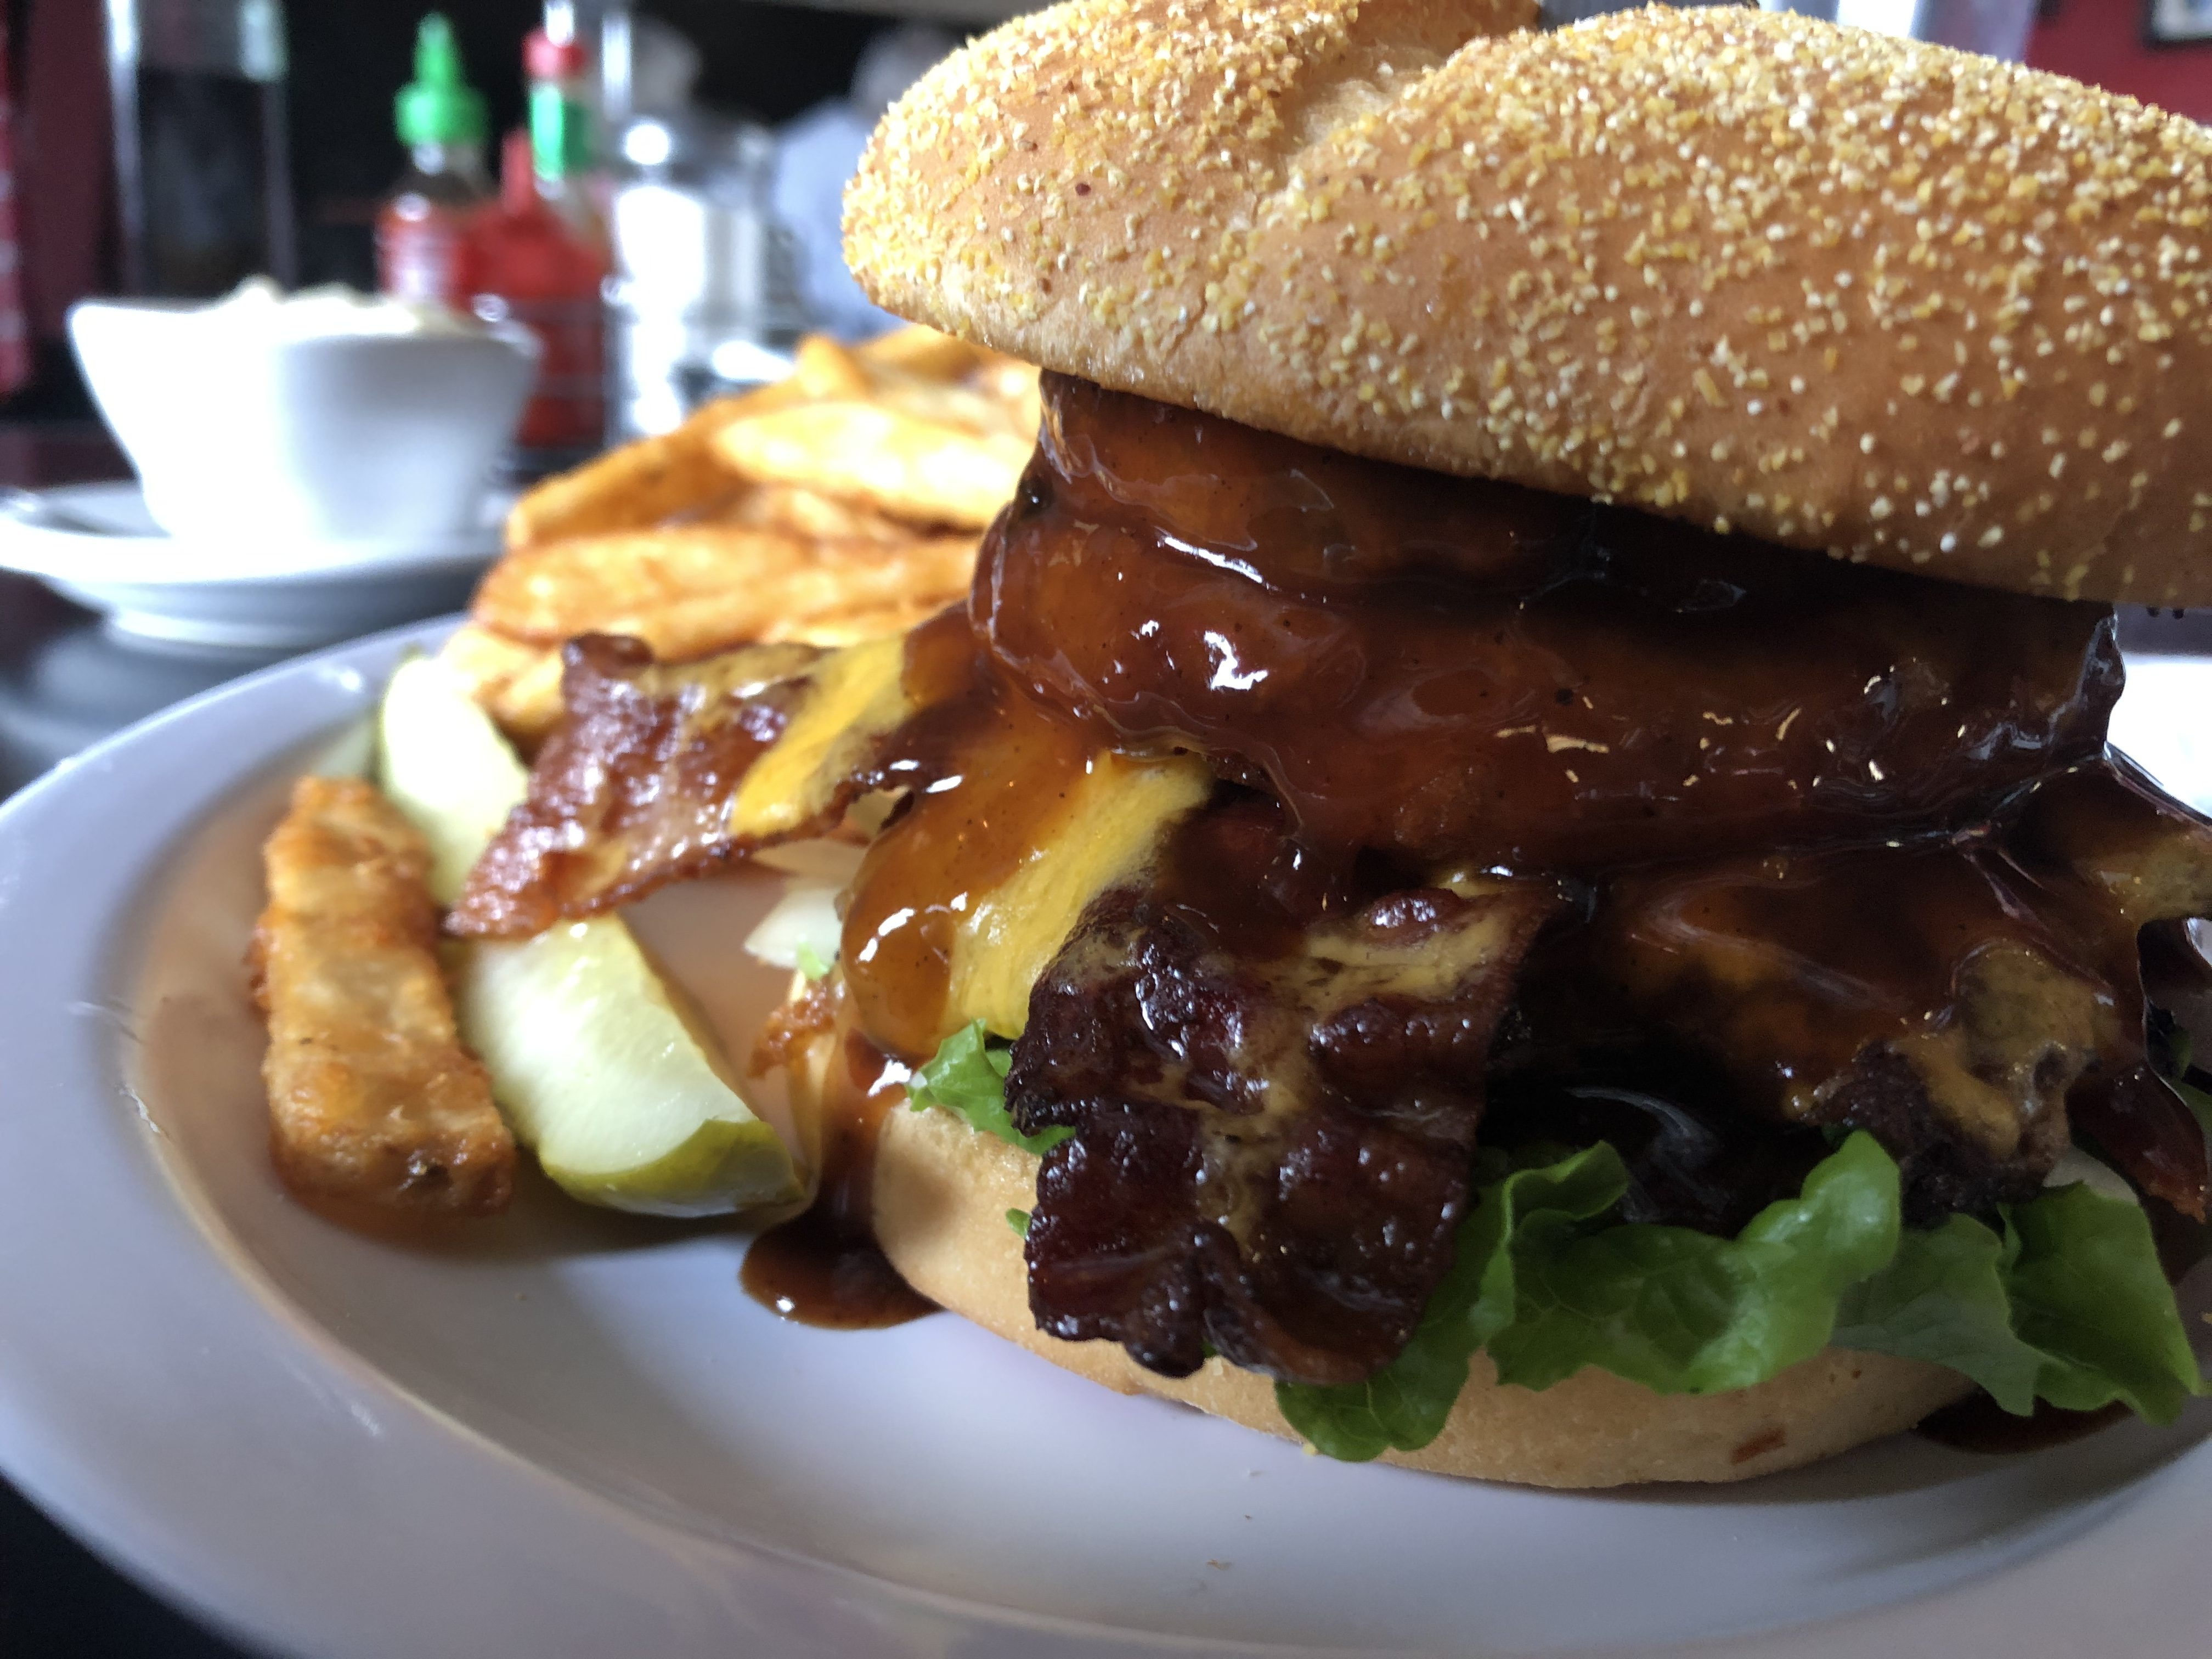 Western Burger at Sageport Grille in Richland – February 19 2019